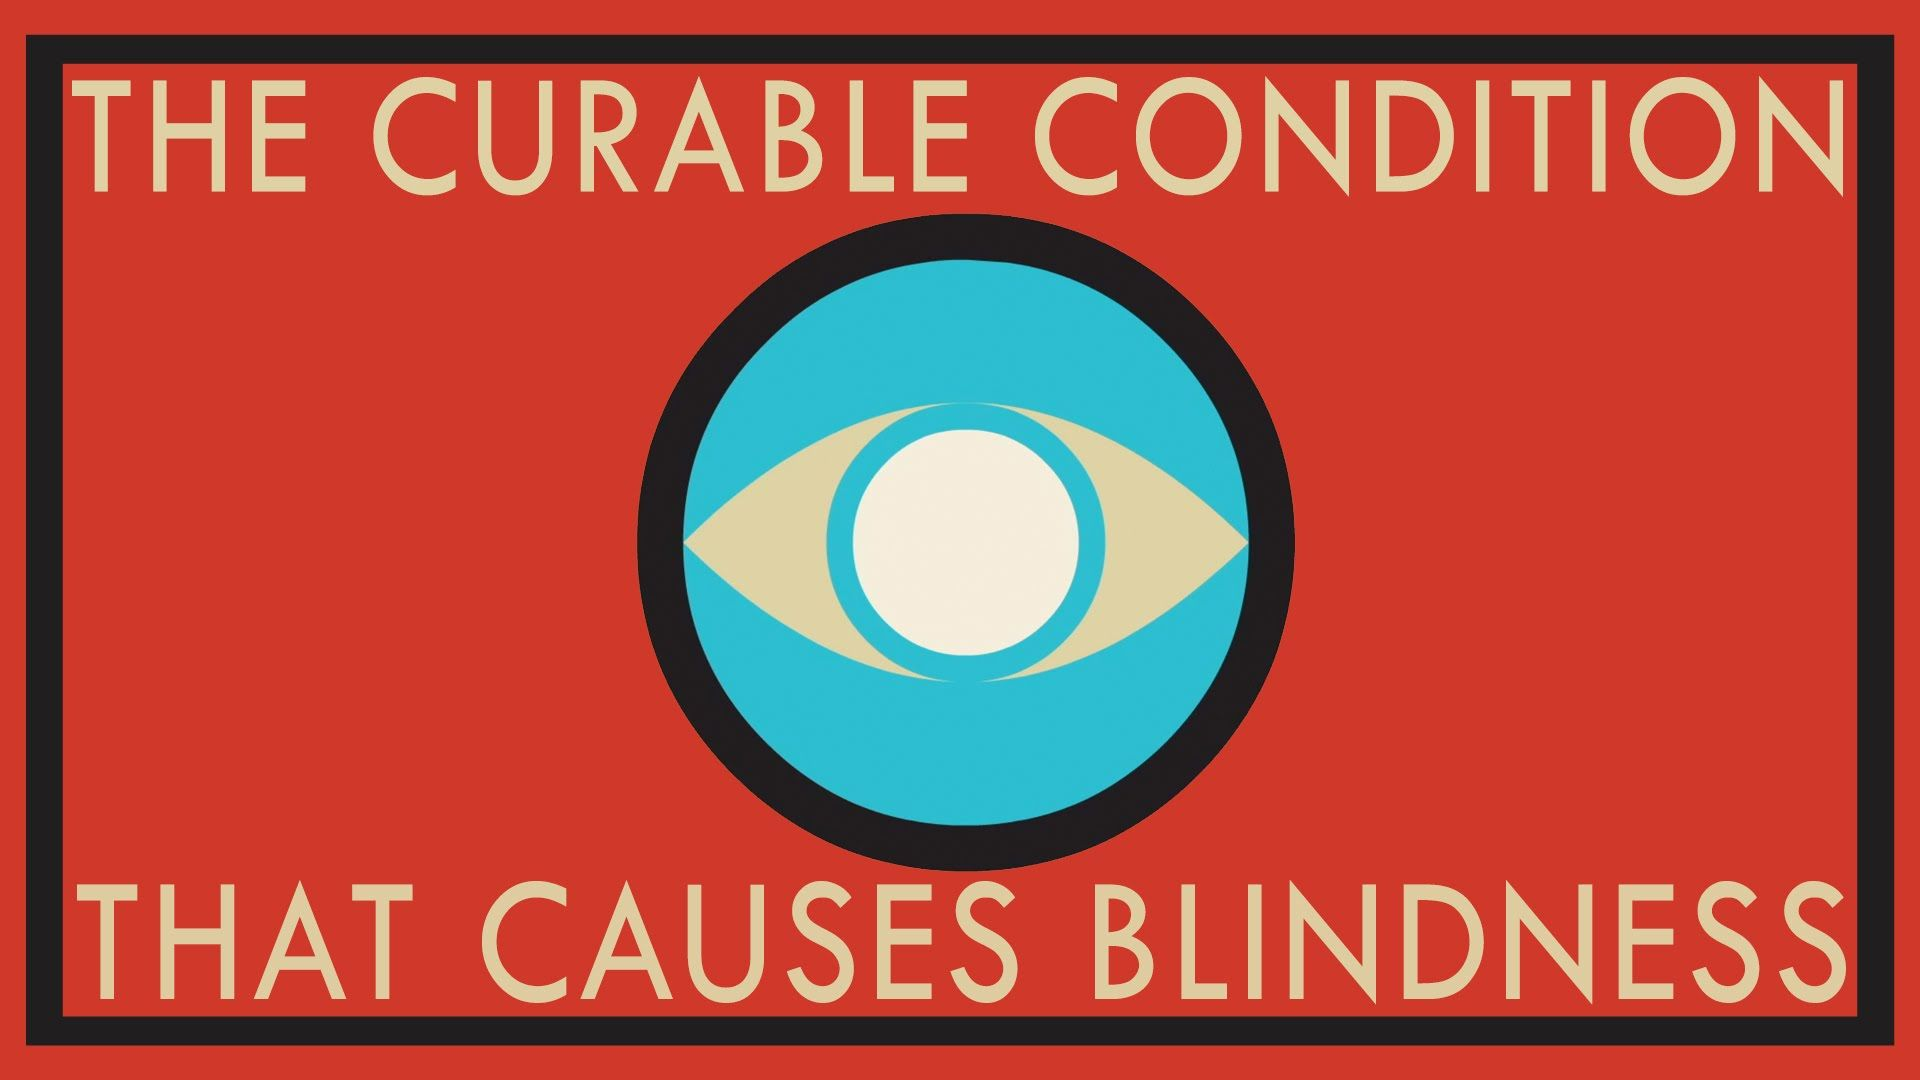 Cataracts: A curable condition that causes blindness (via TED Talks ...